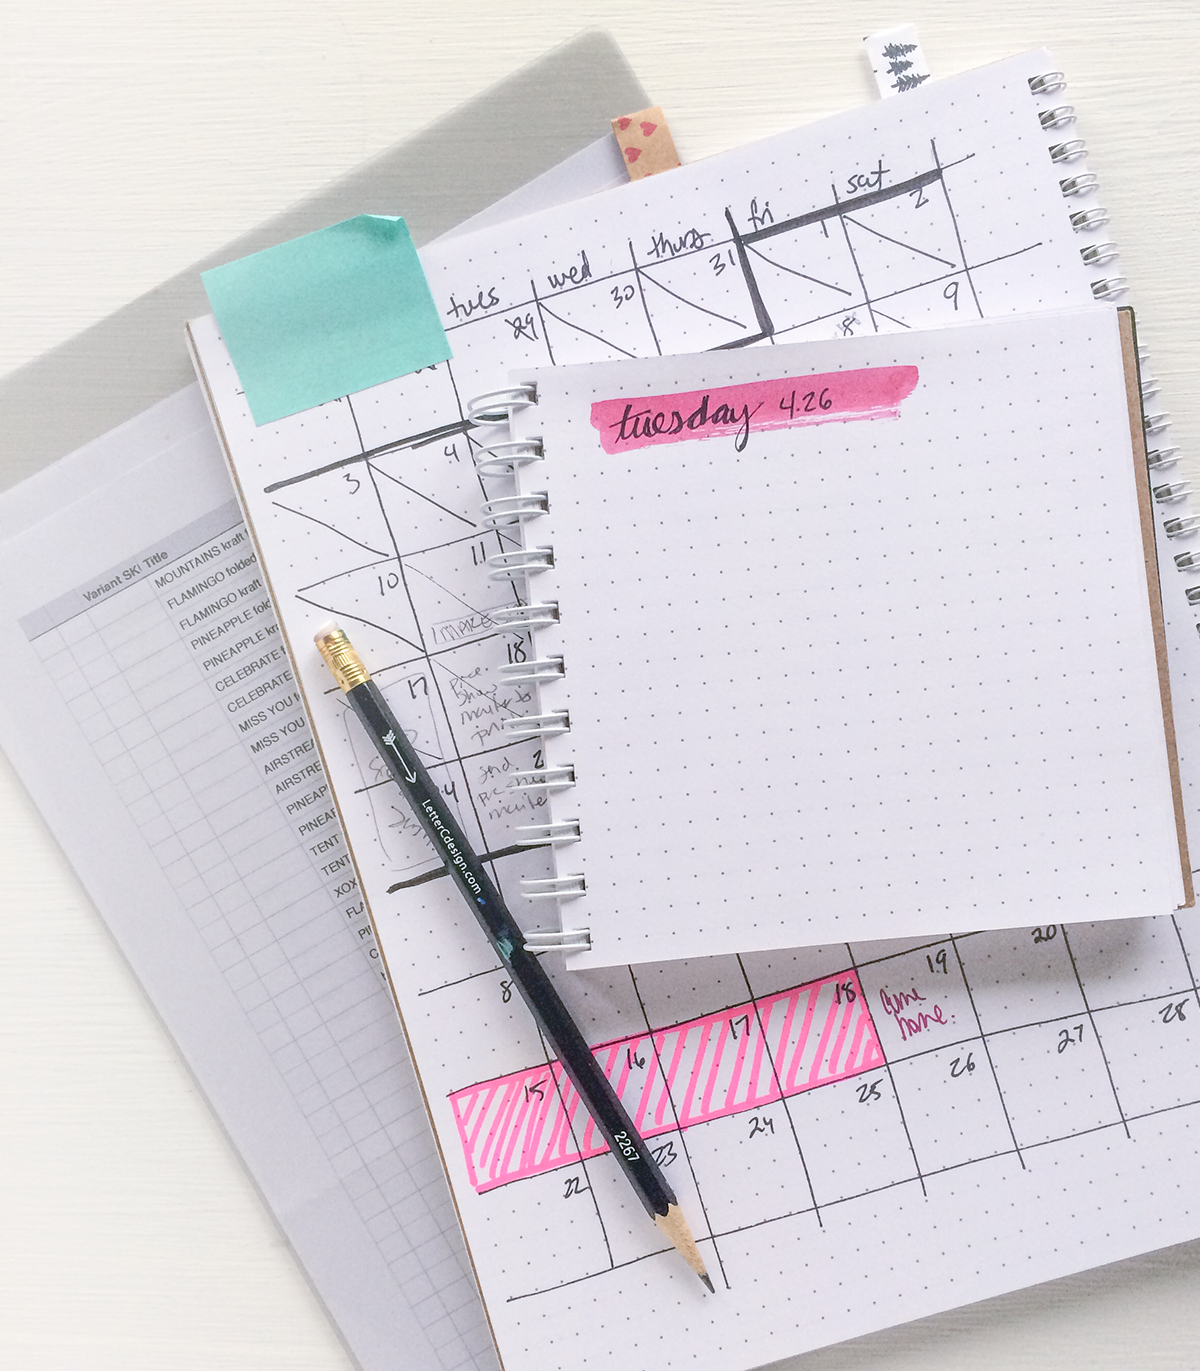 keeping track of big projects in a notebook